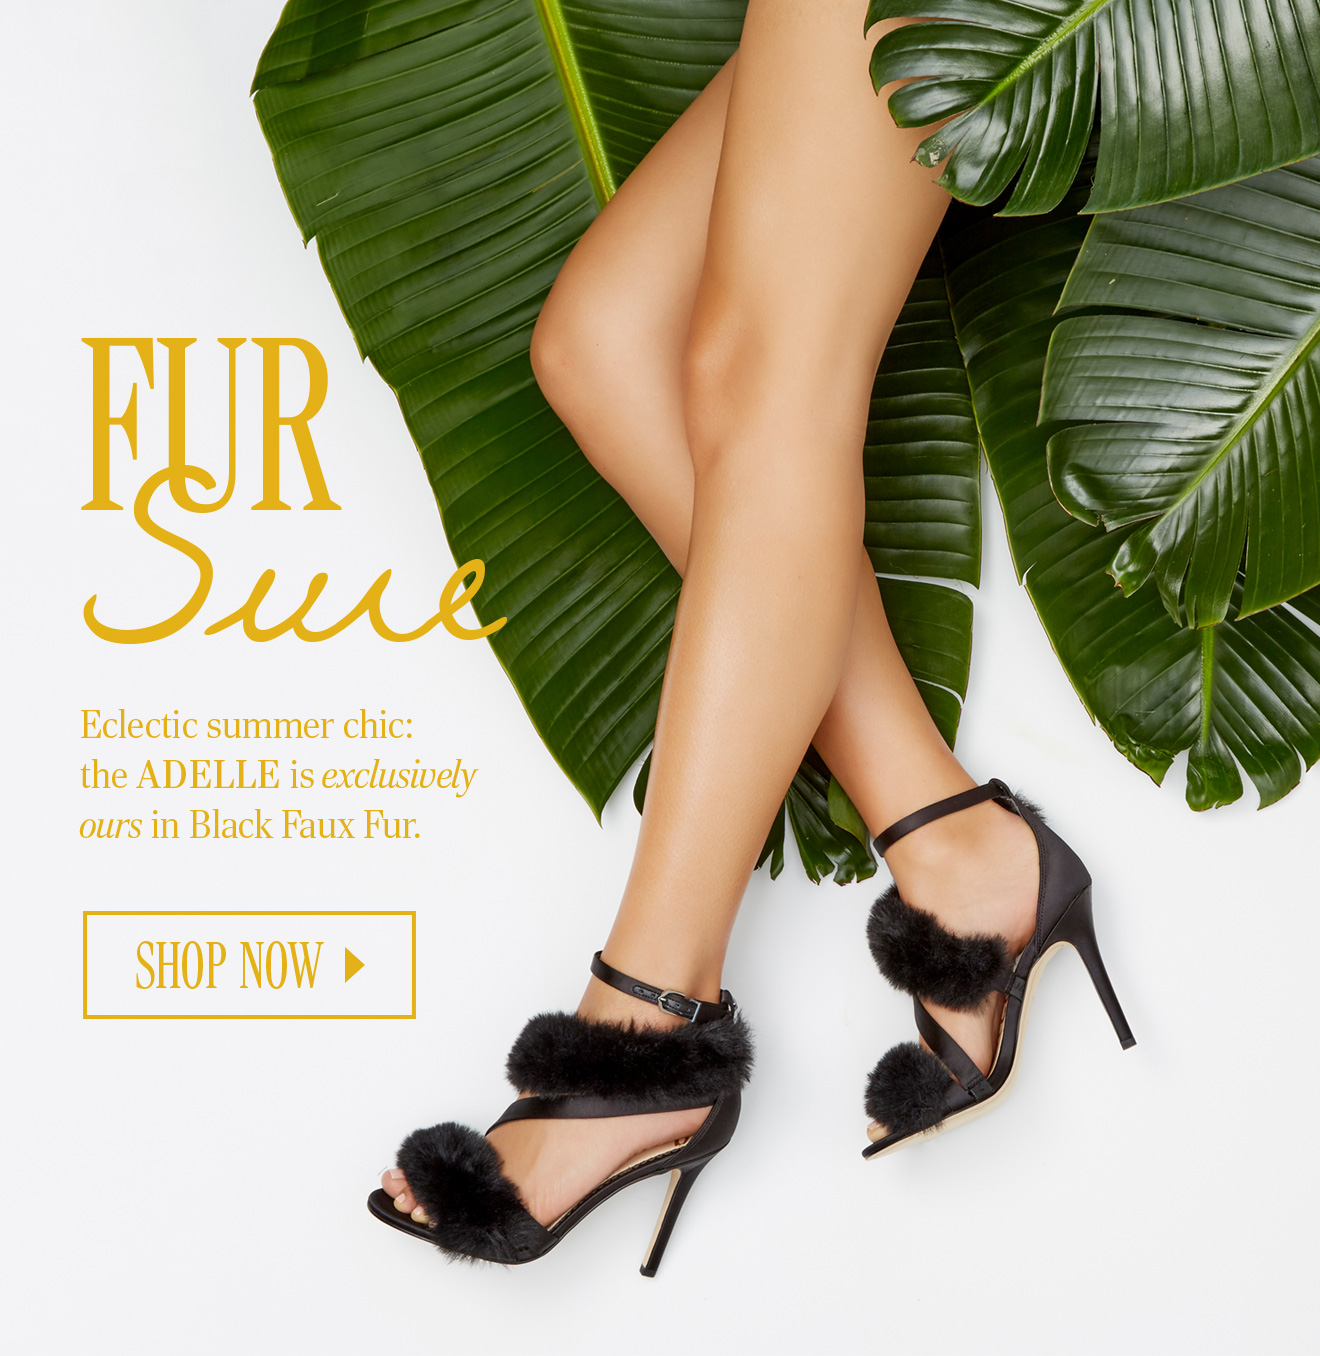 b43066bd0c02 Eclectic summer chic  the Adelle is exclusively ours in Black Faux Fur · ADELLE  FAUX FUR HEELED SANDAL